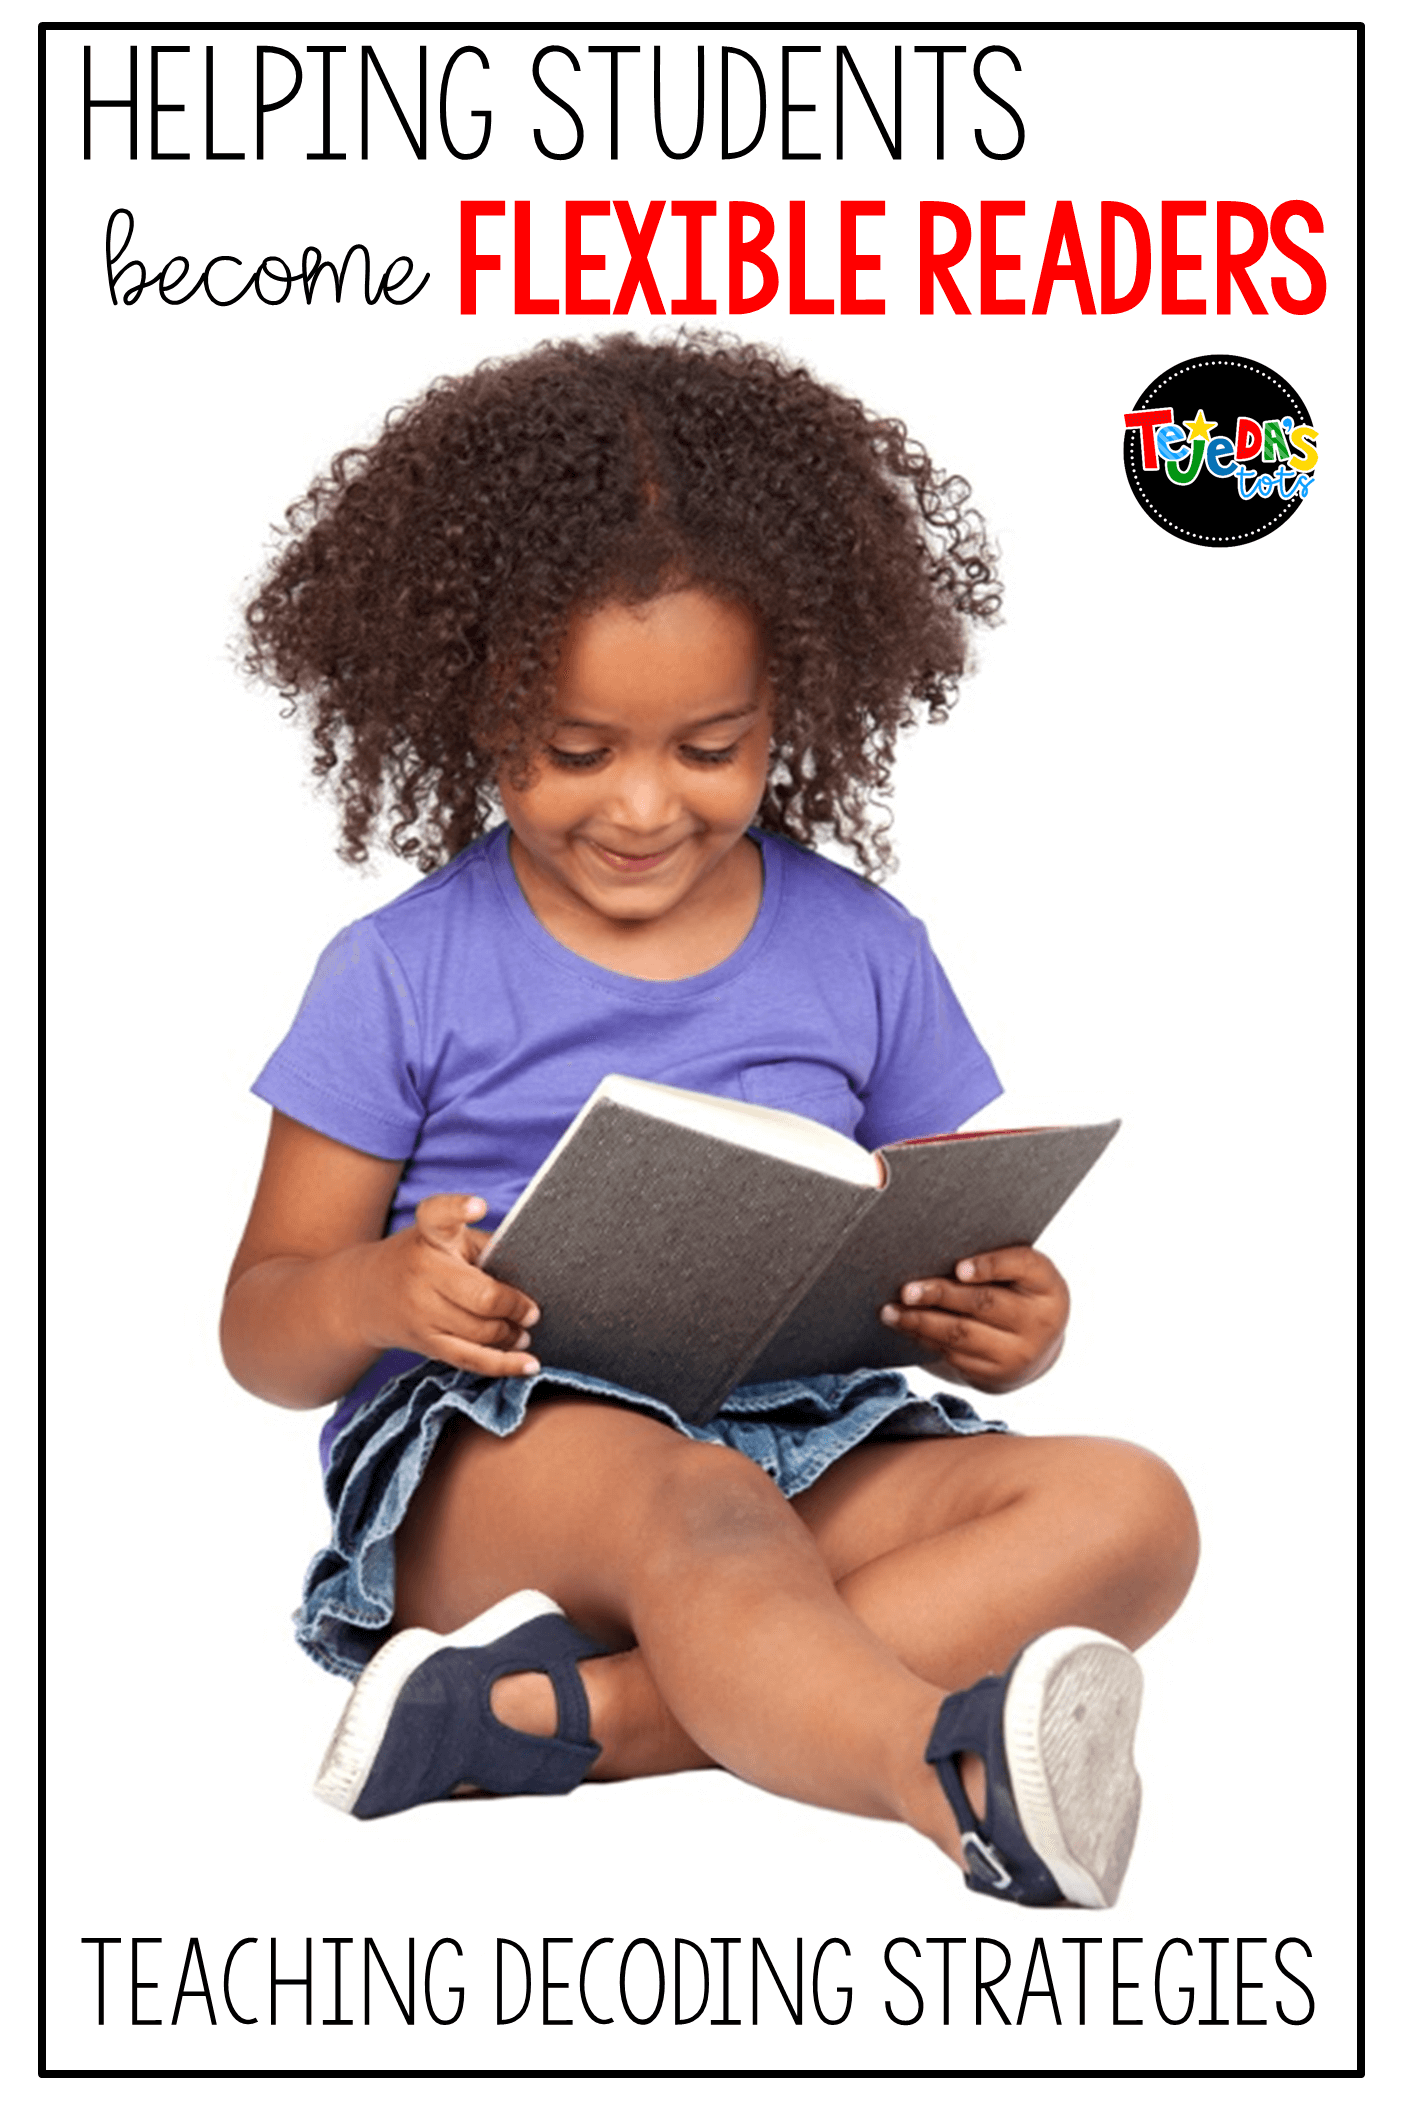 Teaching decoding strategies to beginning readers can be tricky. Read this blog post for tips on helping your kids become independent readers, using many different strategies when they get stuck on a word. #tejedastots